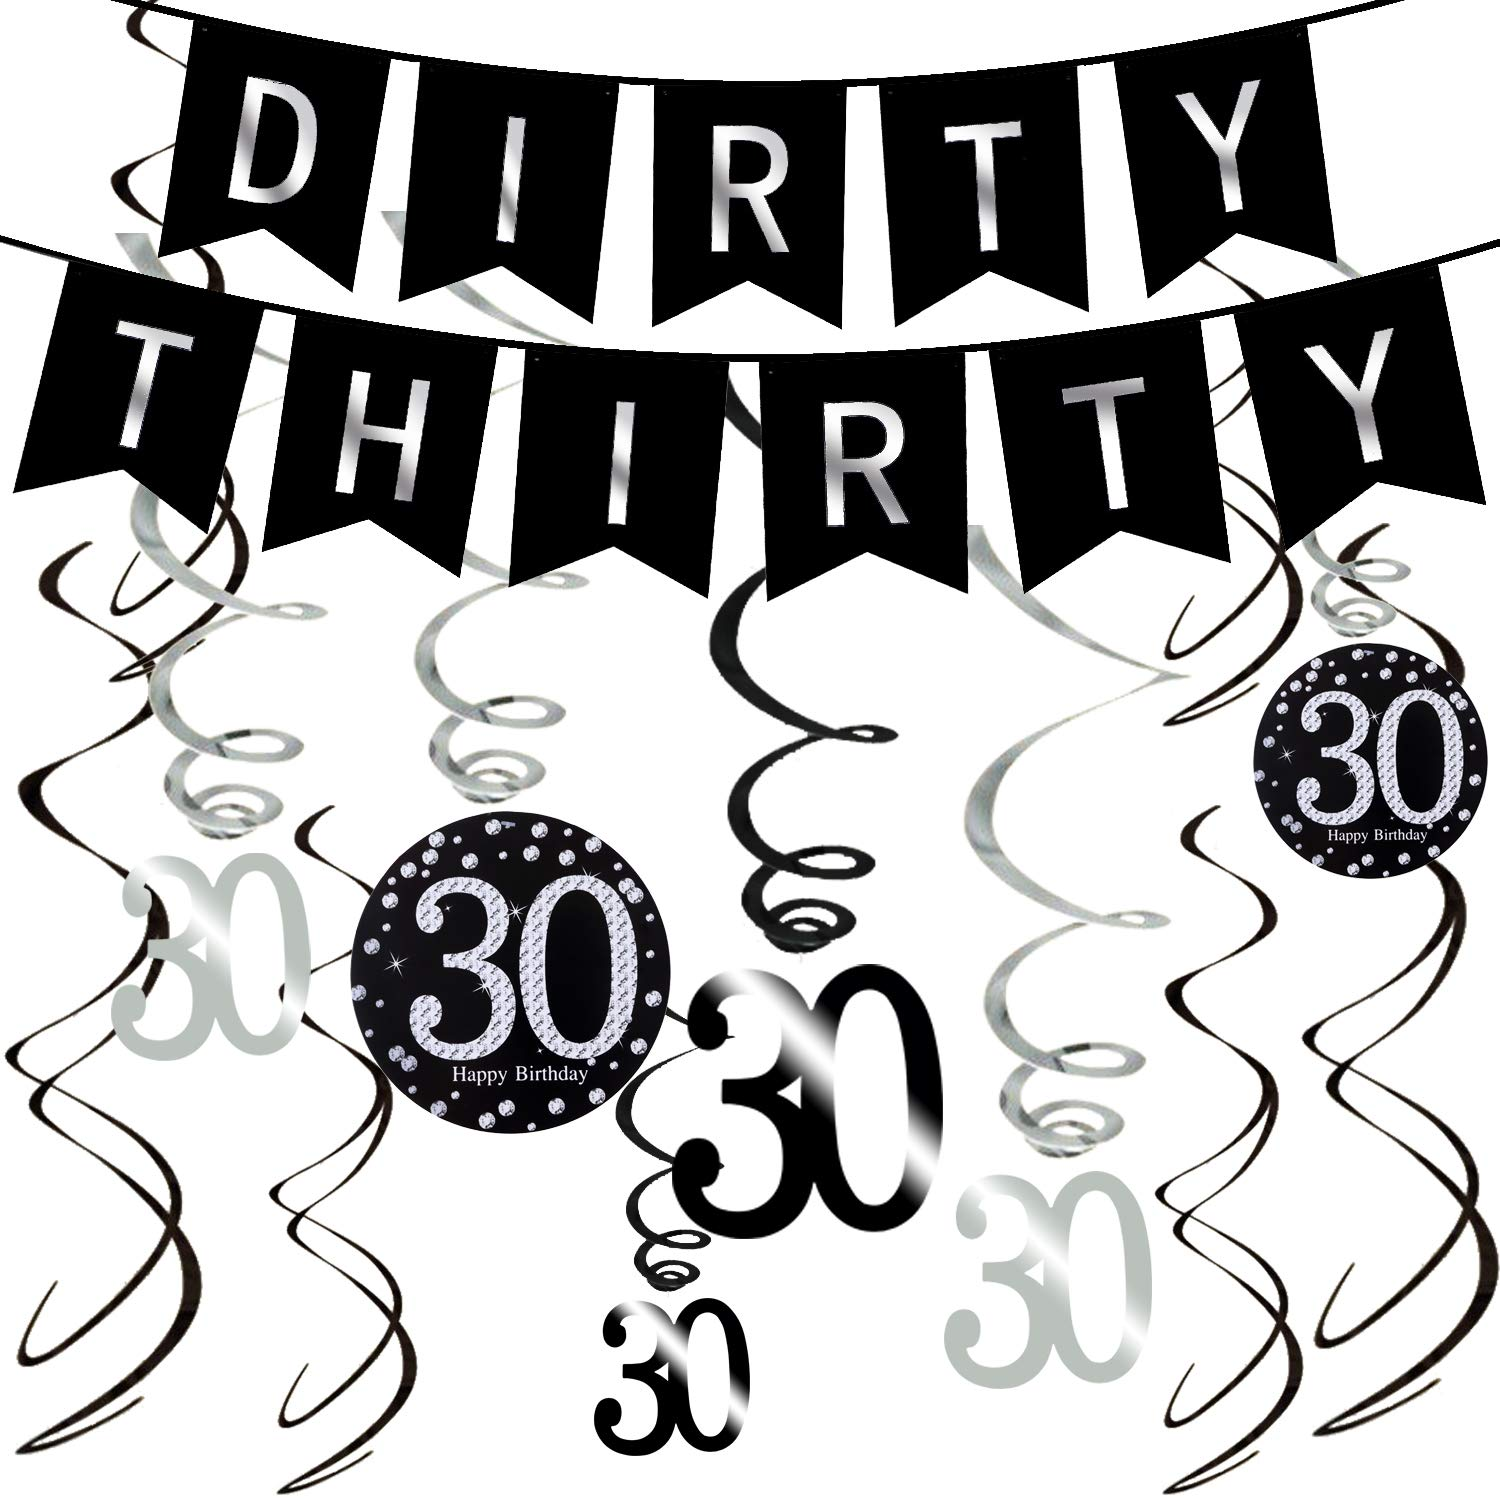 amazon ahaya 30th birthday decorations kit 50 pieces silver Bow Clear Background amazon ahaya 30th birthday decorations kit 50 pieces silver black dirty thirty banner 40 inch 30 balloons sparkling 30 hanging swirls